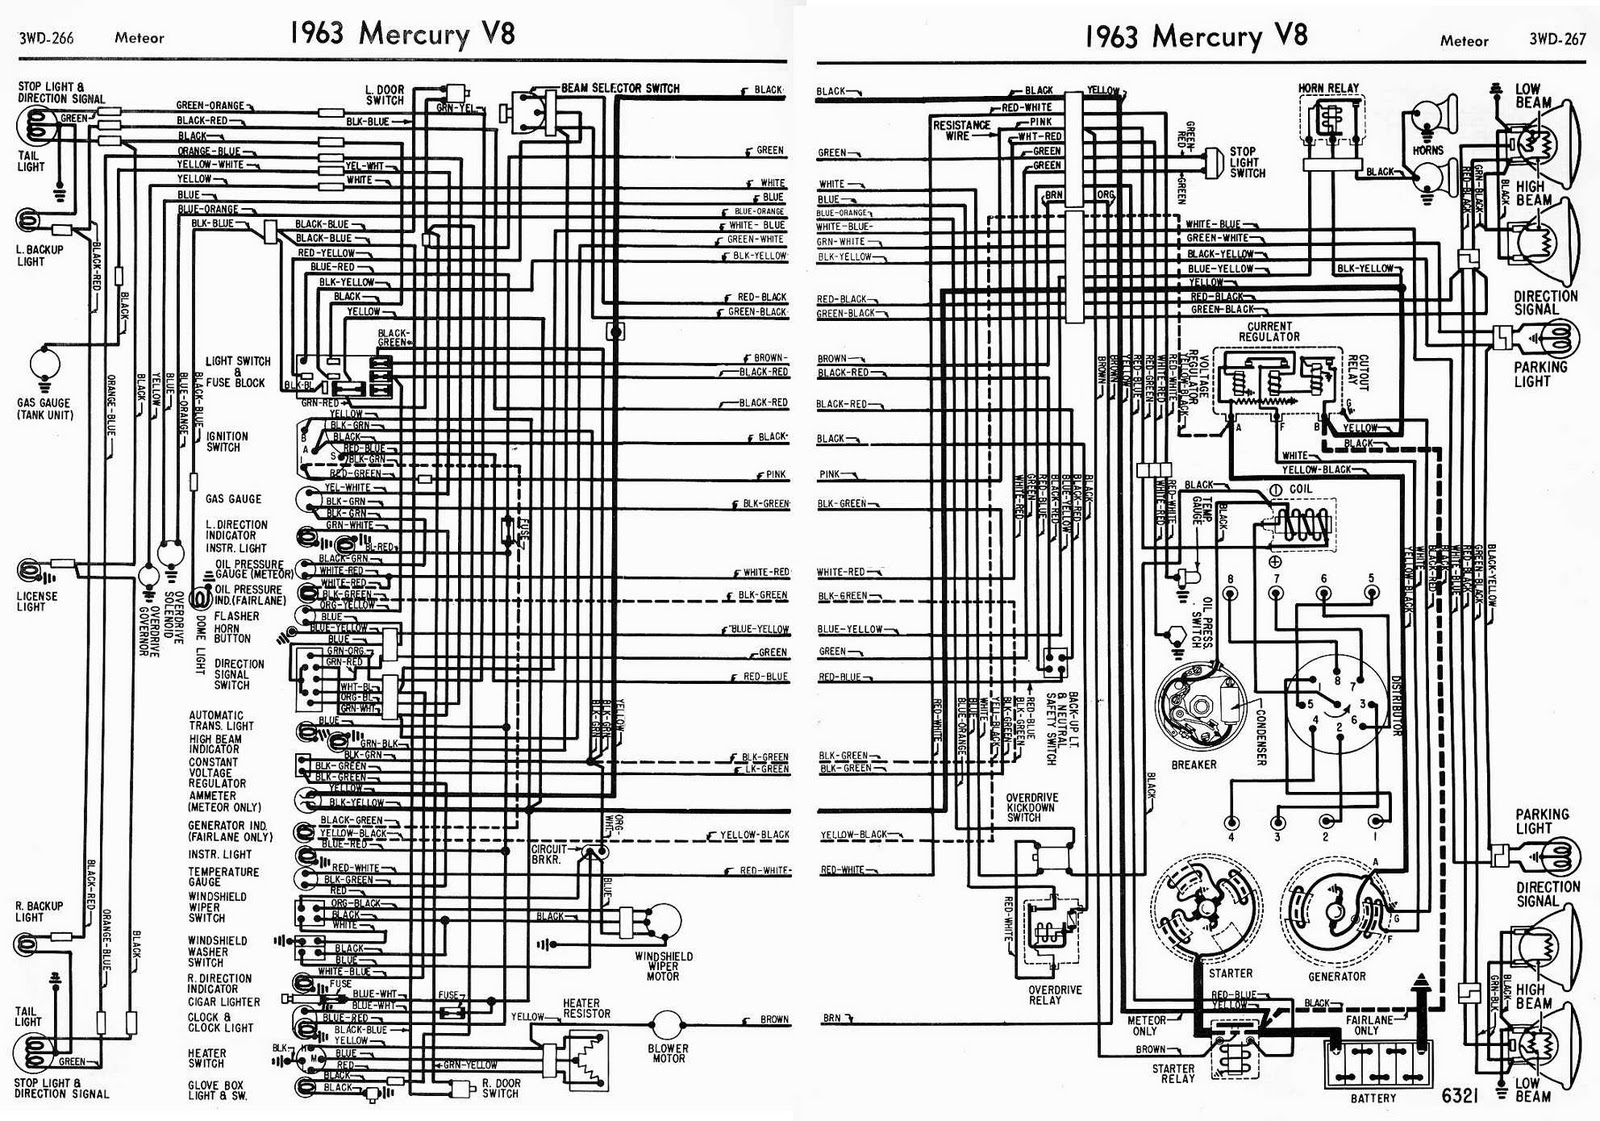 medium resolution of 1963 mercury v8 meteor complete wiring diagram